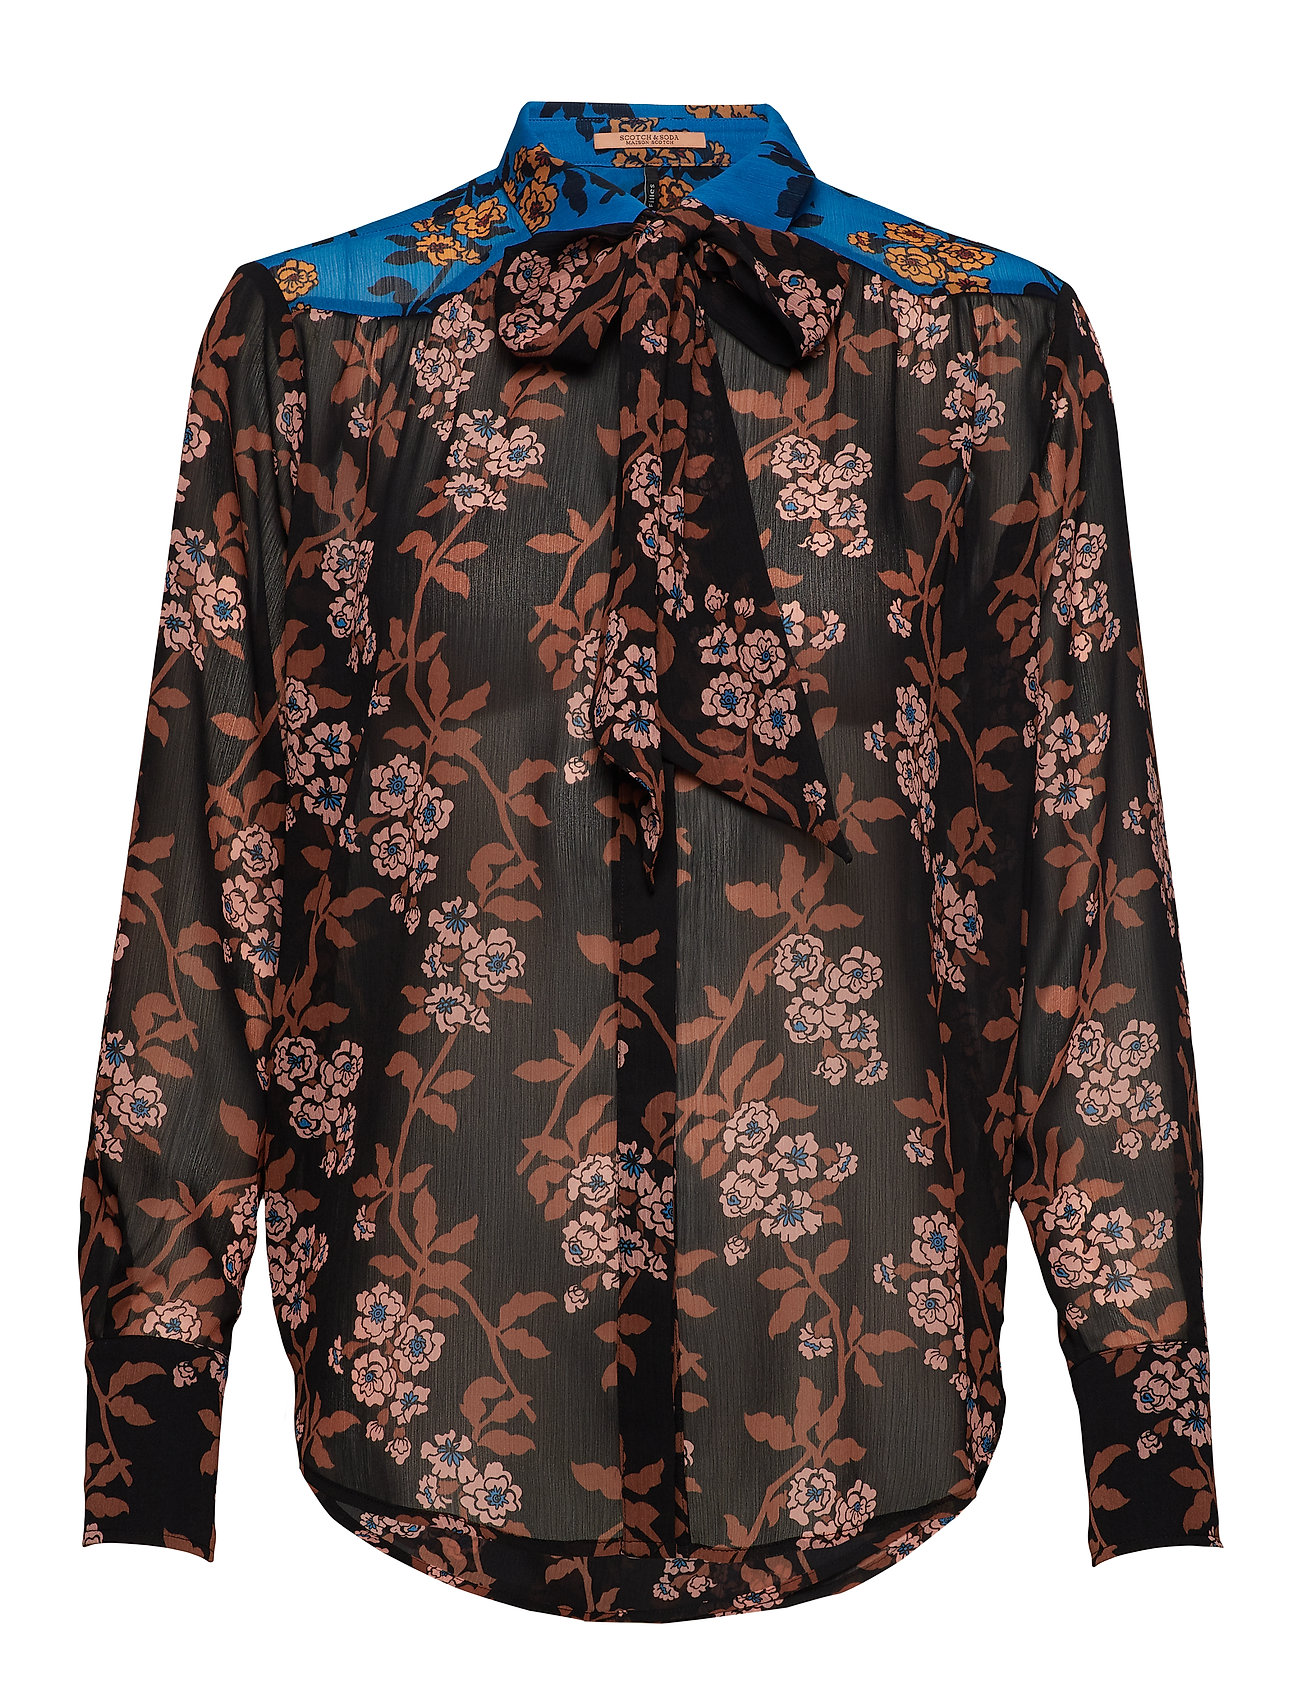 Scotch & Soda Mixed print shirt with tie detail - COMBO F